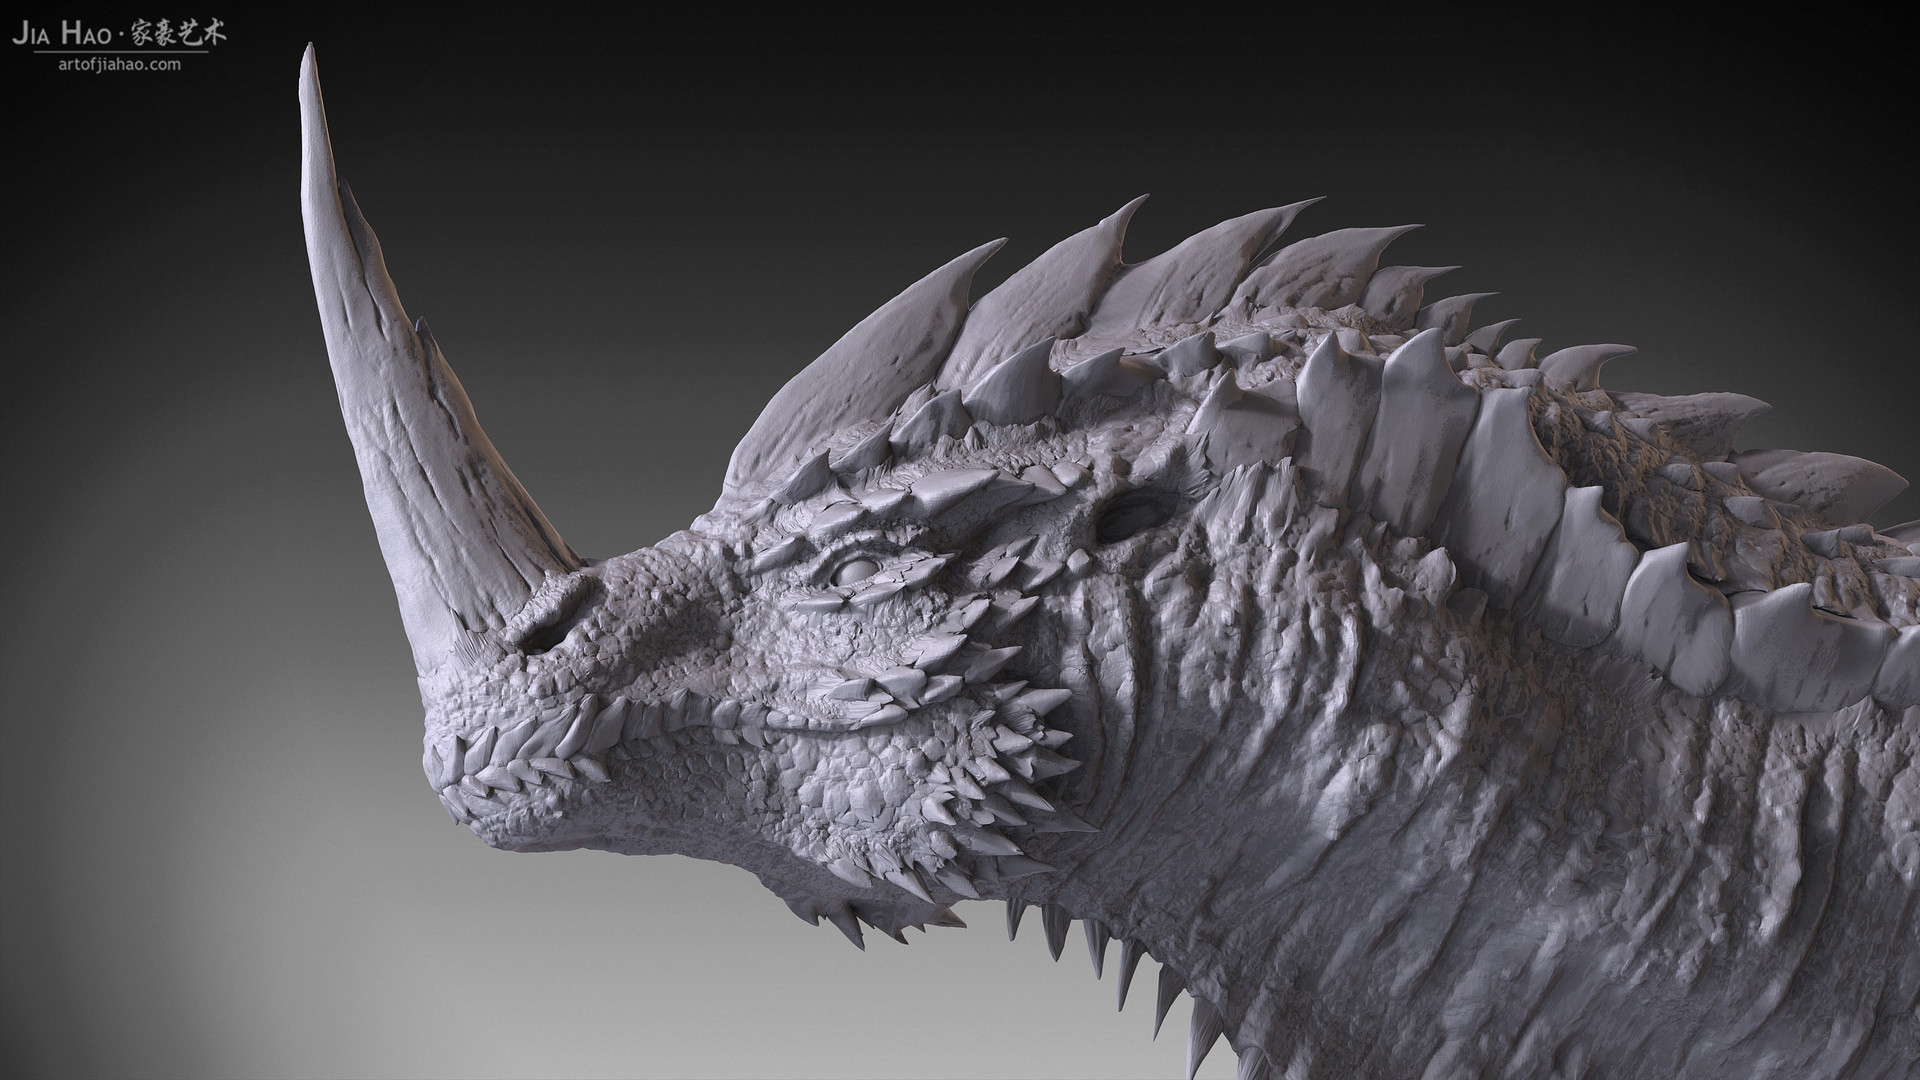 Jia hao 2017 horneddragon digitalsculpting 01